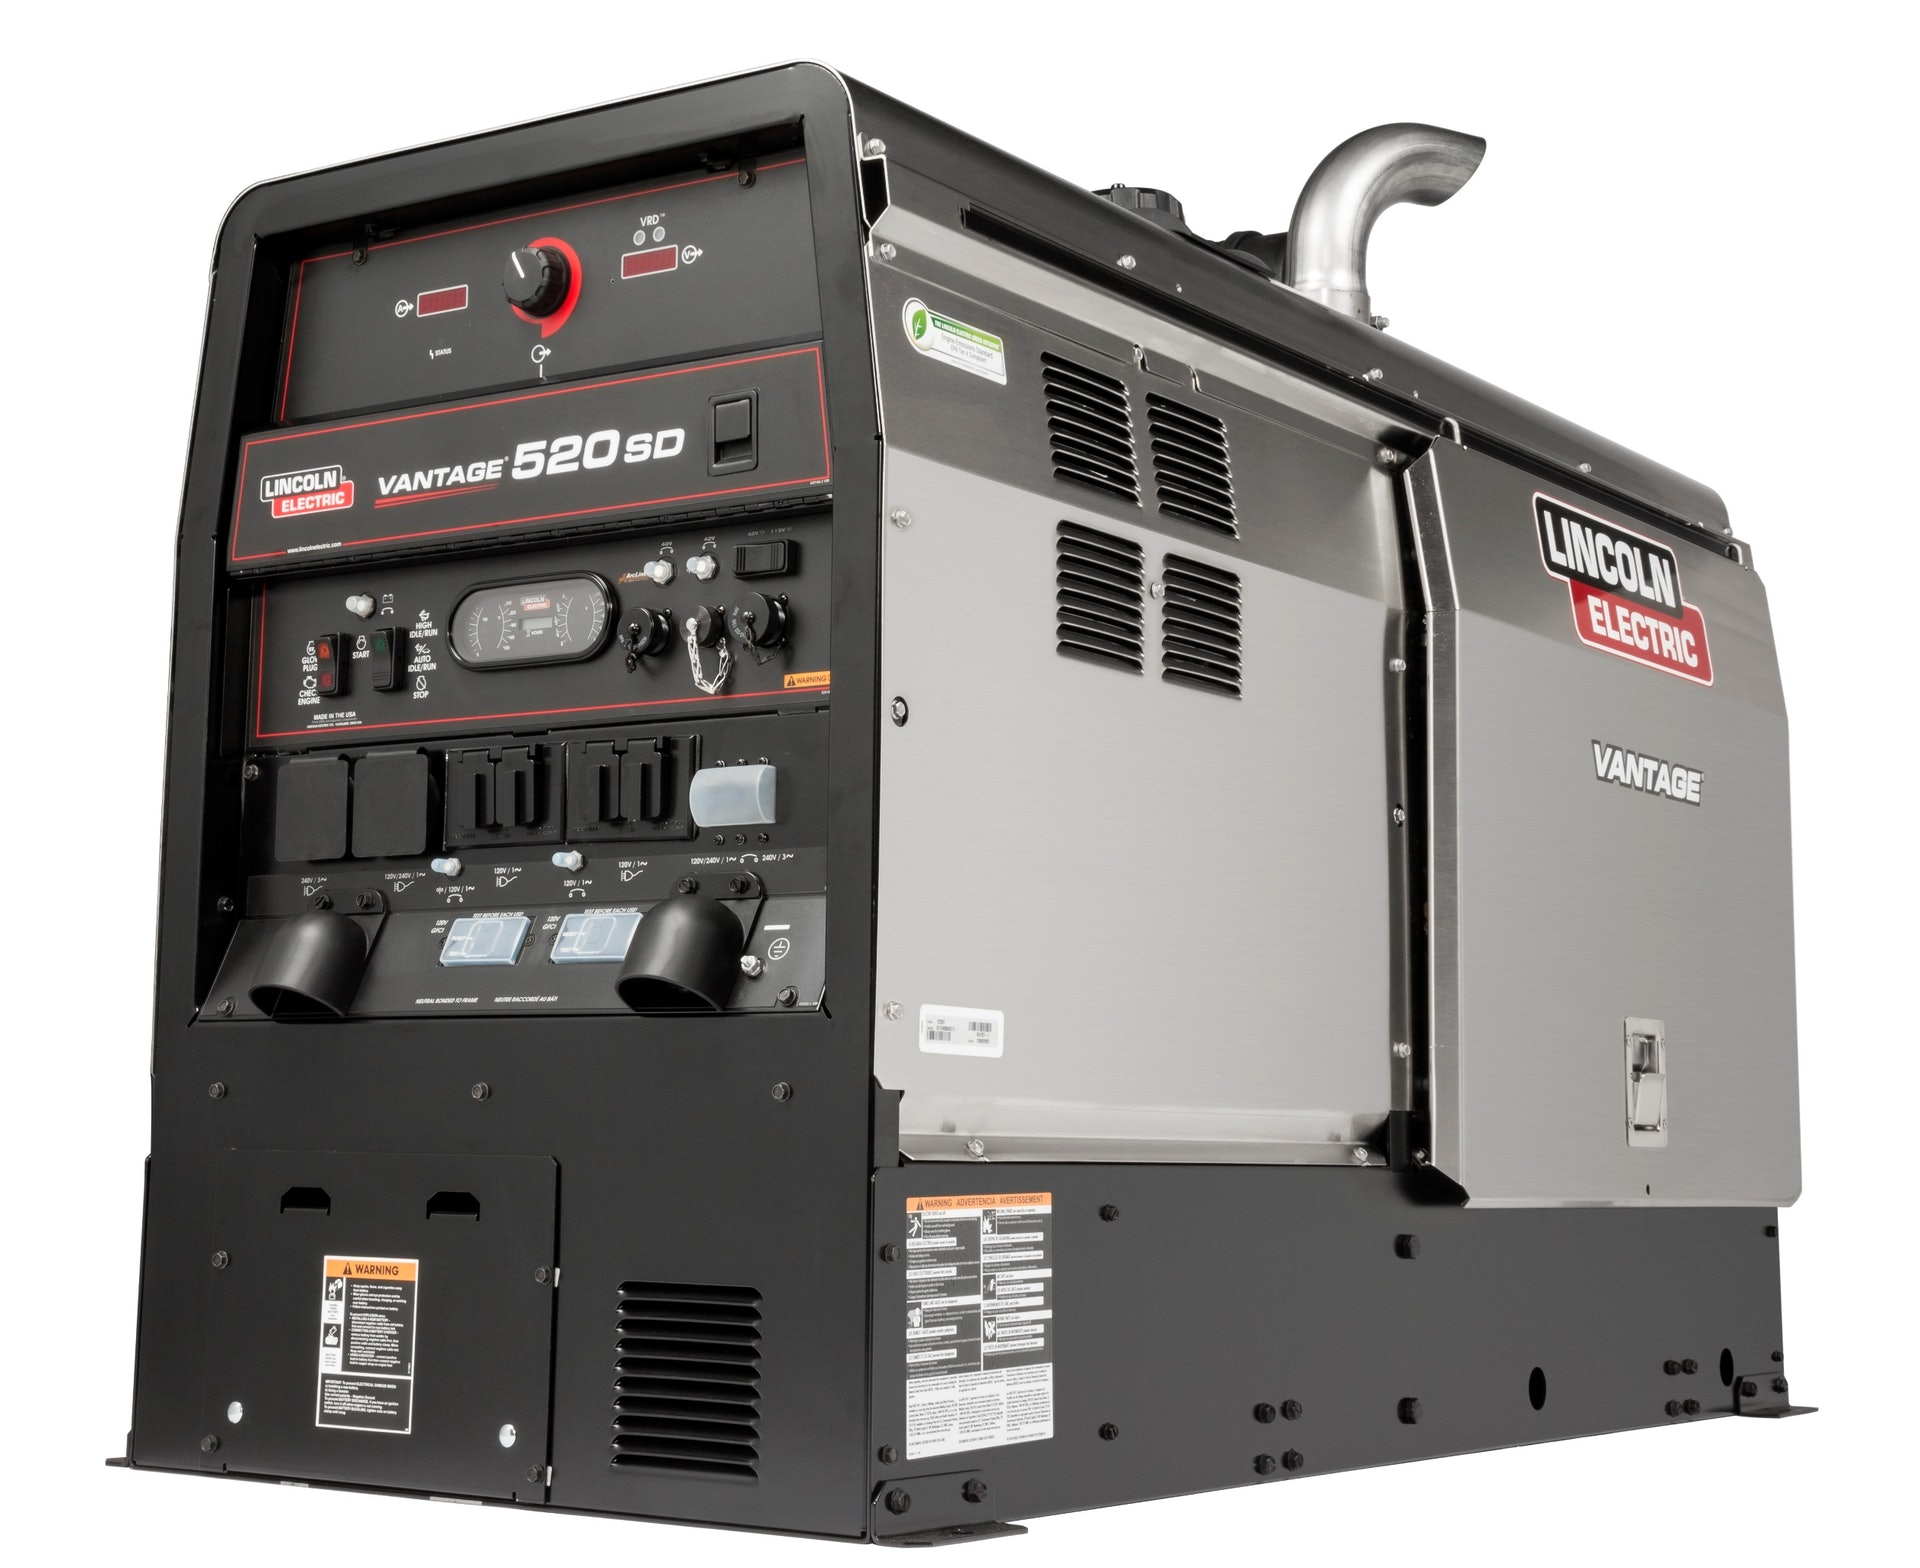 Lincoln Electric Vantage 520 Sd Welder Generator From Lincoln Electric Co For Construction Pros